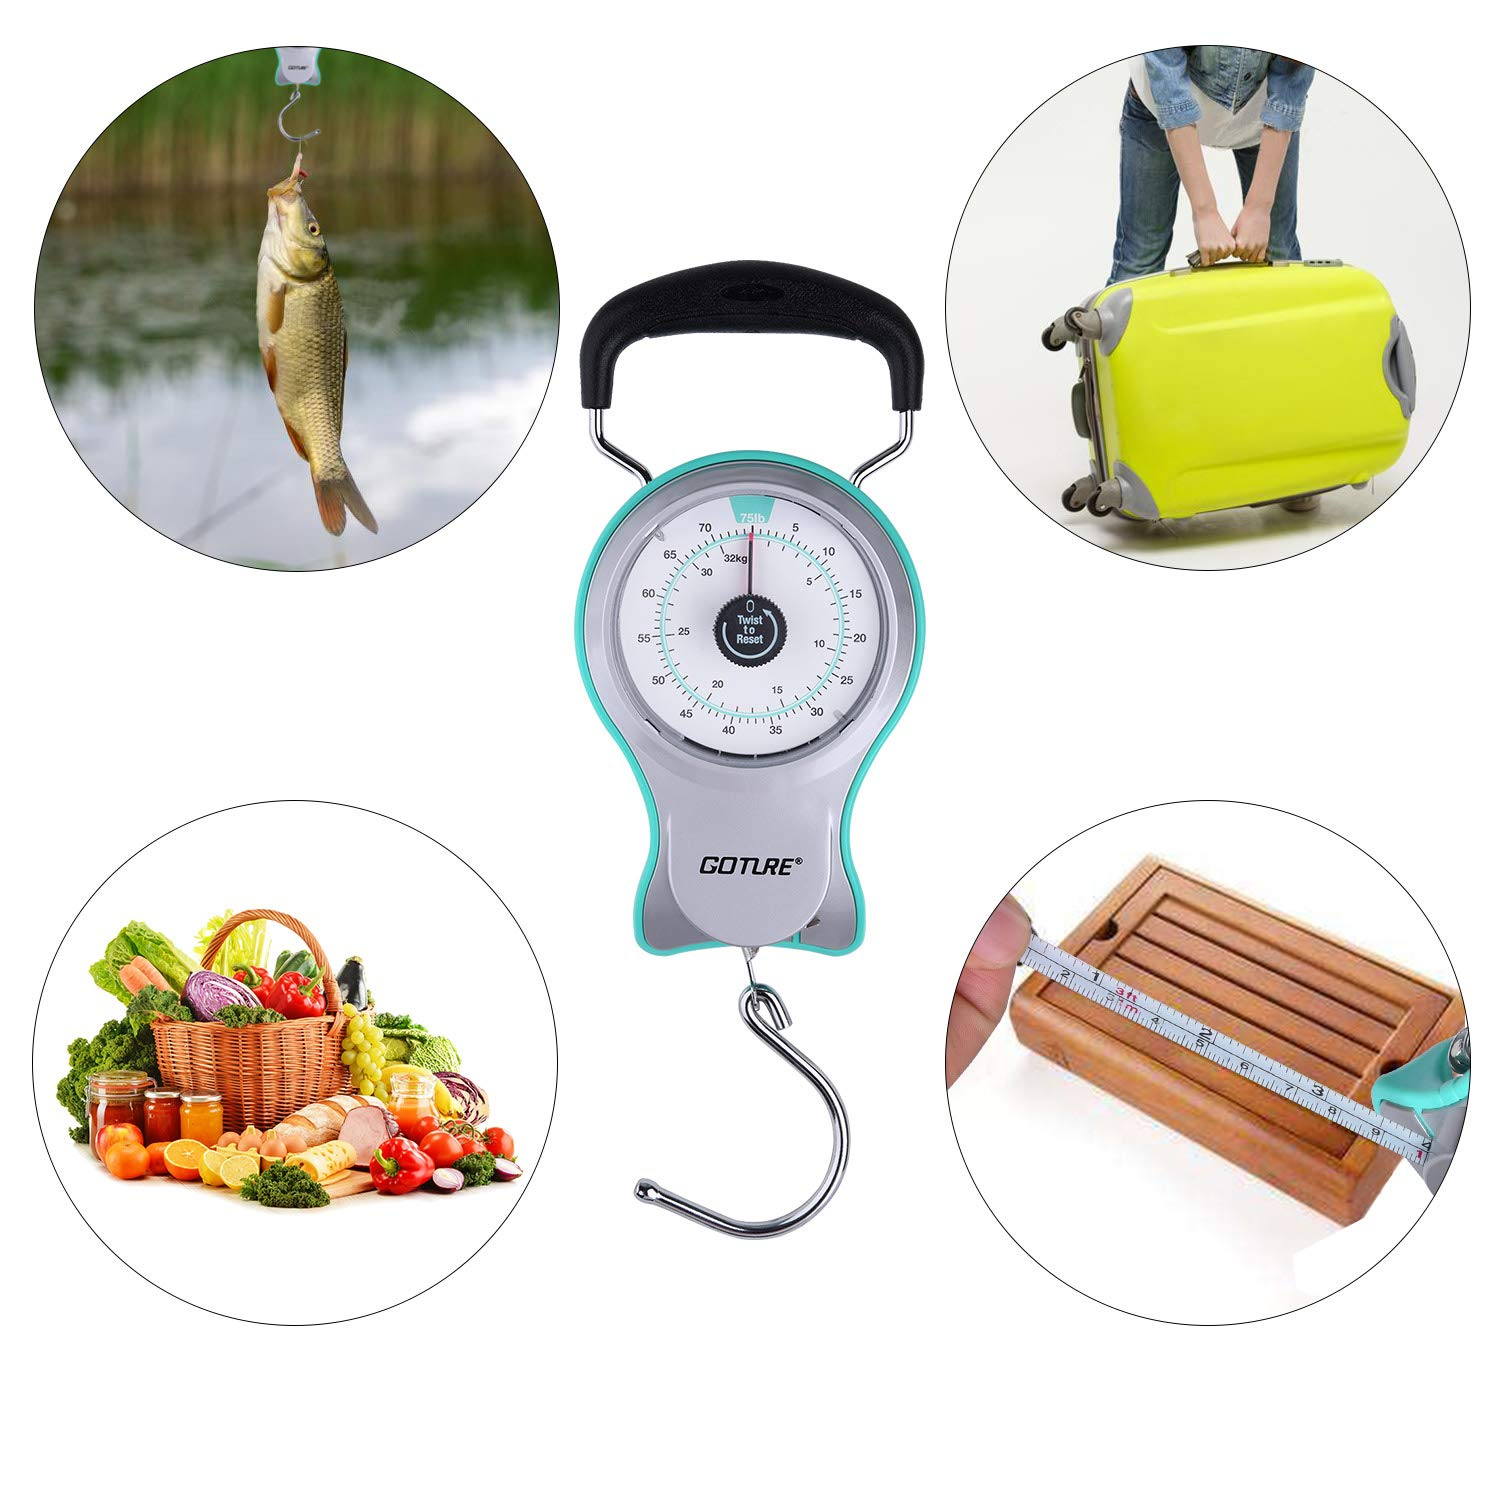 Goture Portable Fishing Weighing Scale Multi-Purpose Fishing Kitchen and Luggage Hanging Scales with Tape Measure (Capacity up to 75lb)